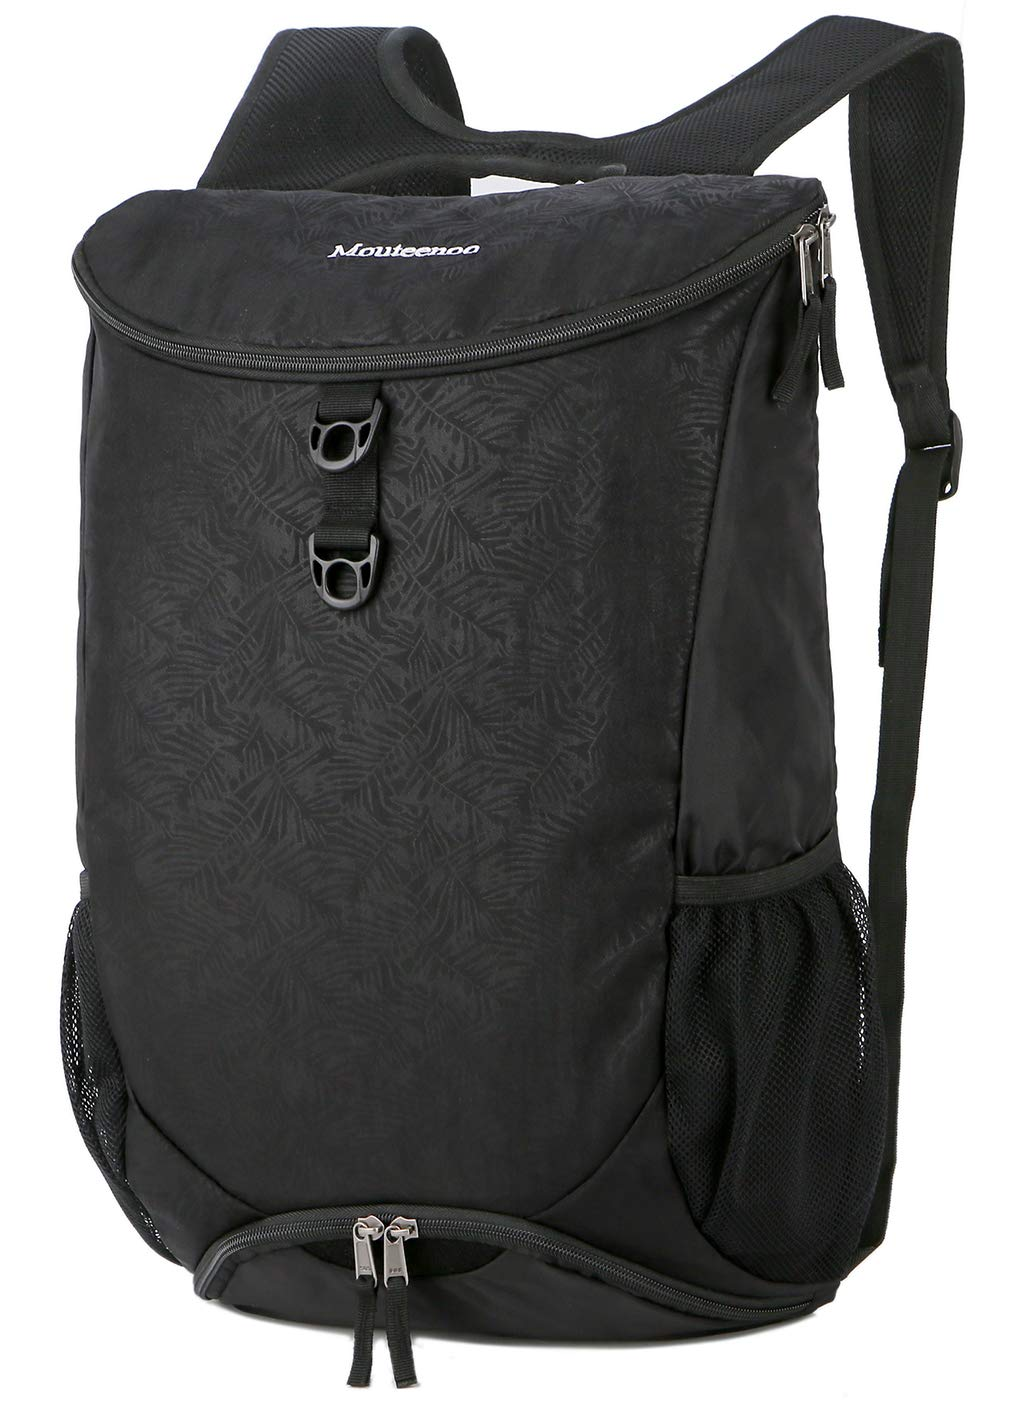 Mouteenoo Backpack Compartment Drawstring Sackpack